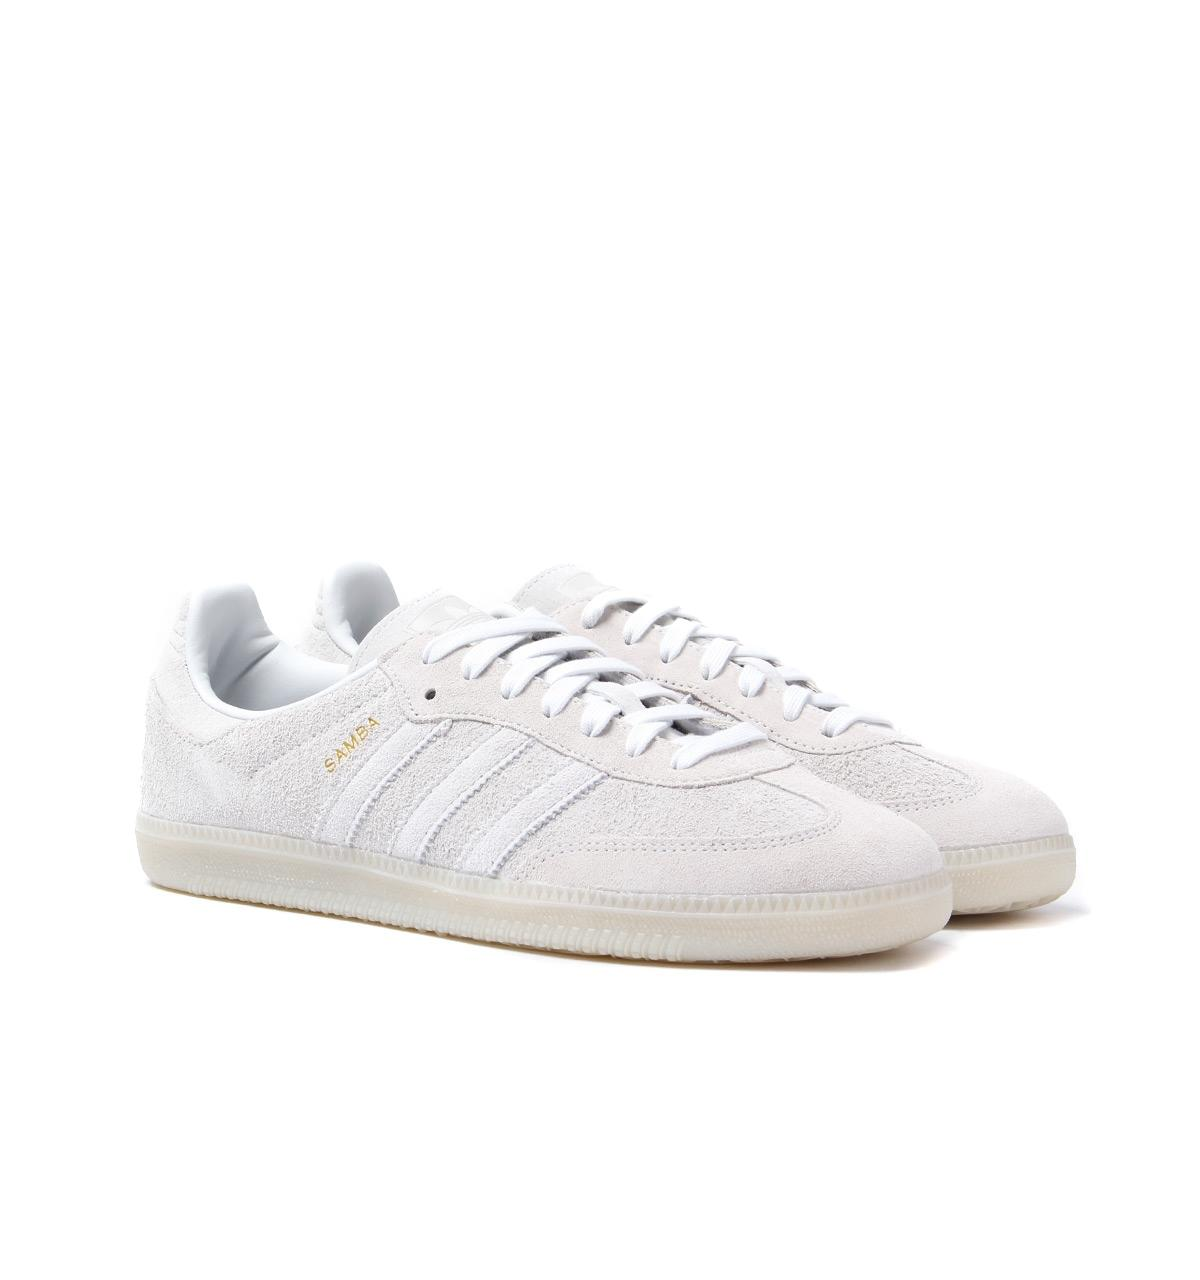 adidas Originals Adidas Samba Og Crystal White Trainers in White for ... 56a866ce1bd5